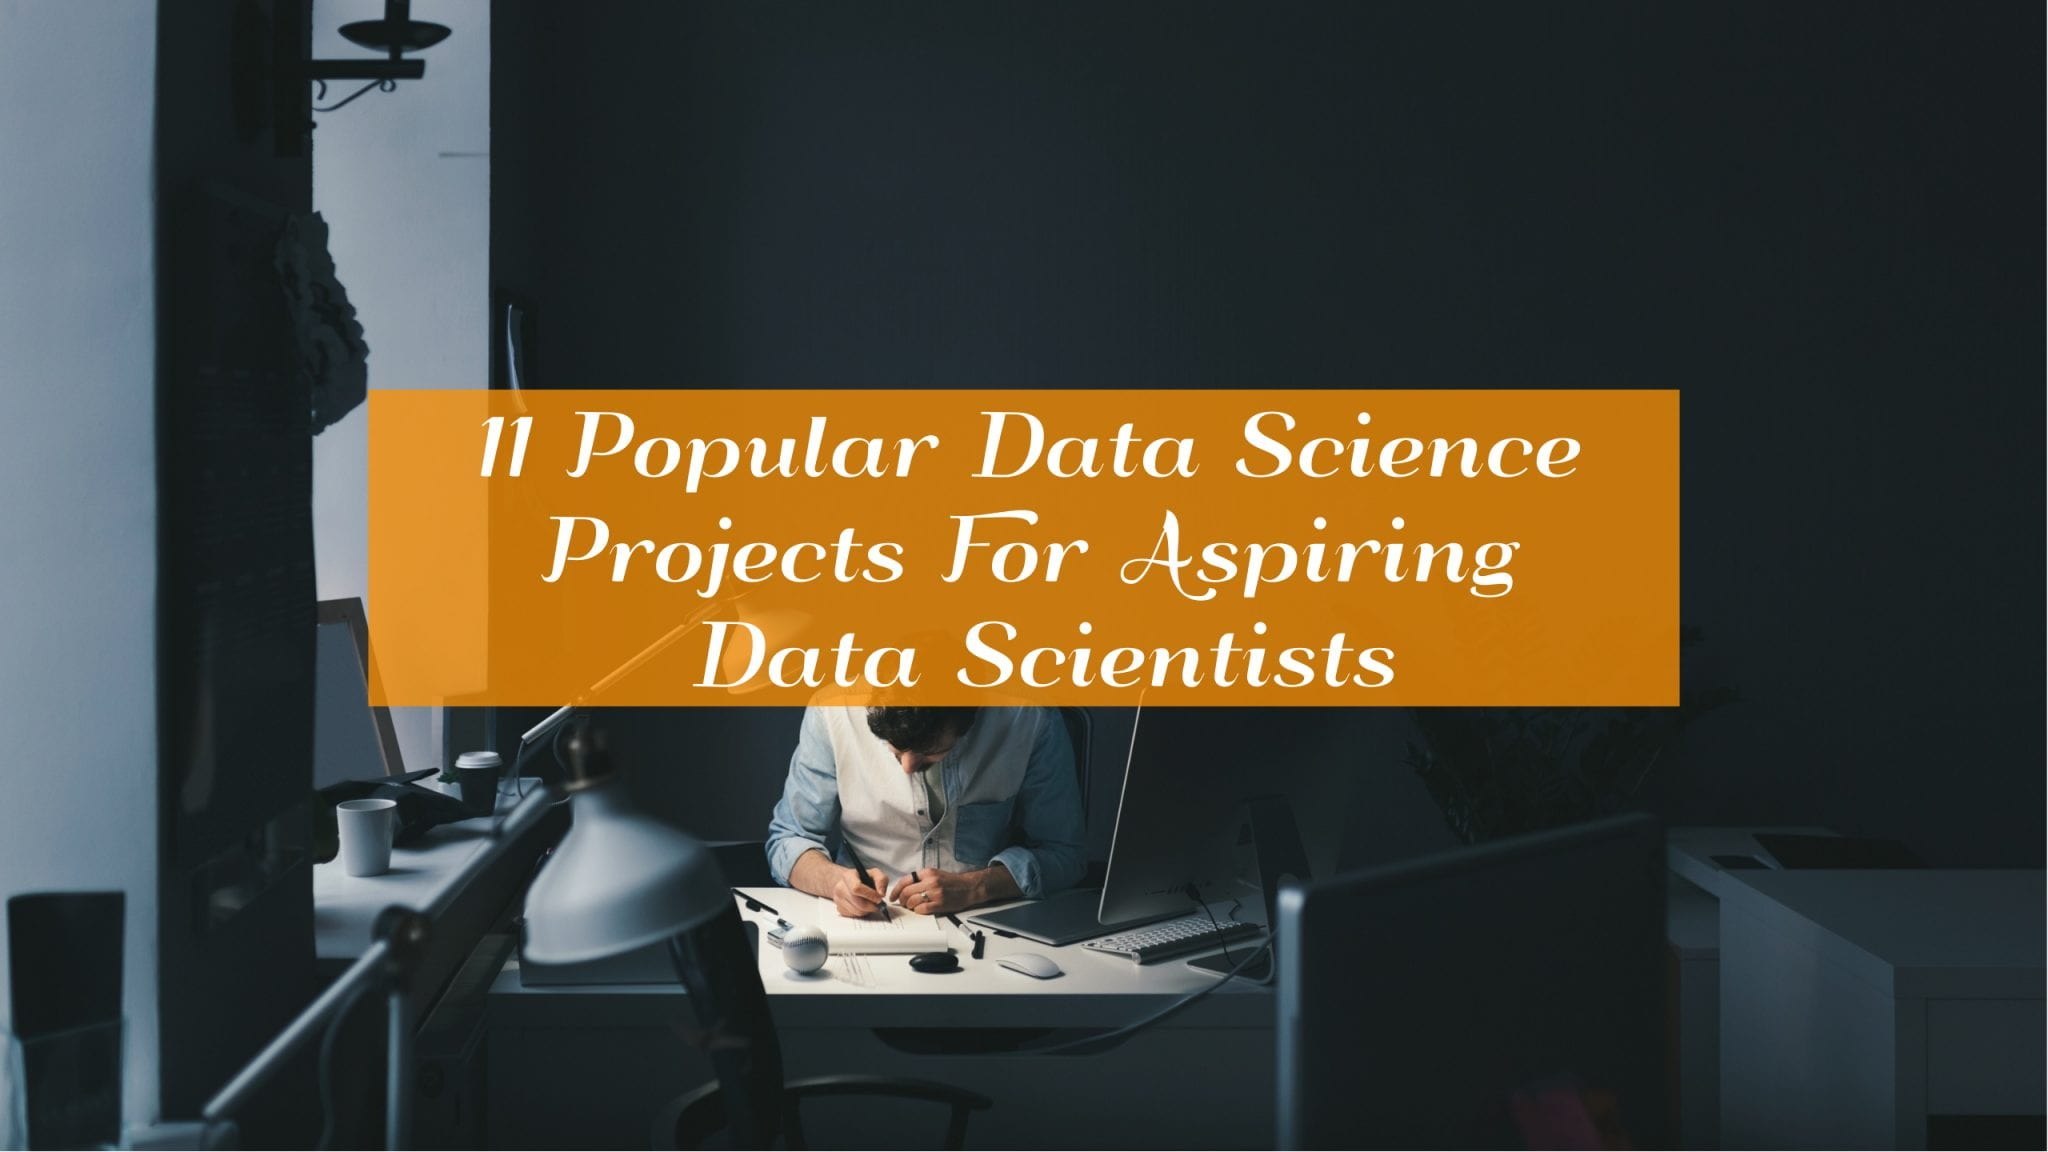 11 Popular Data Science Projects For Aspiring Data Scientists